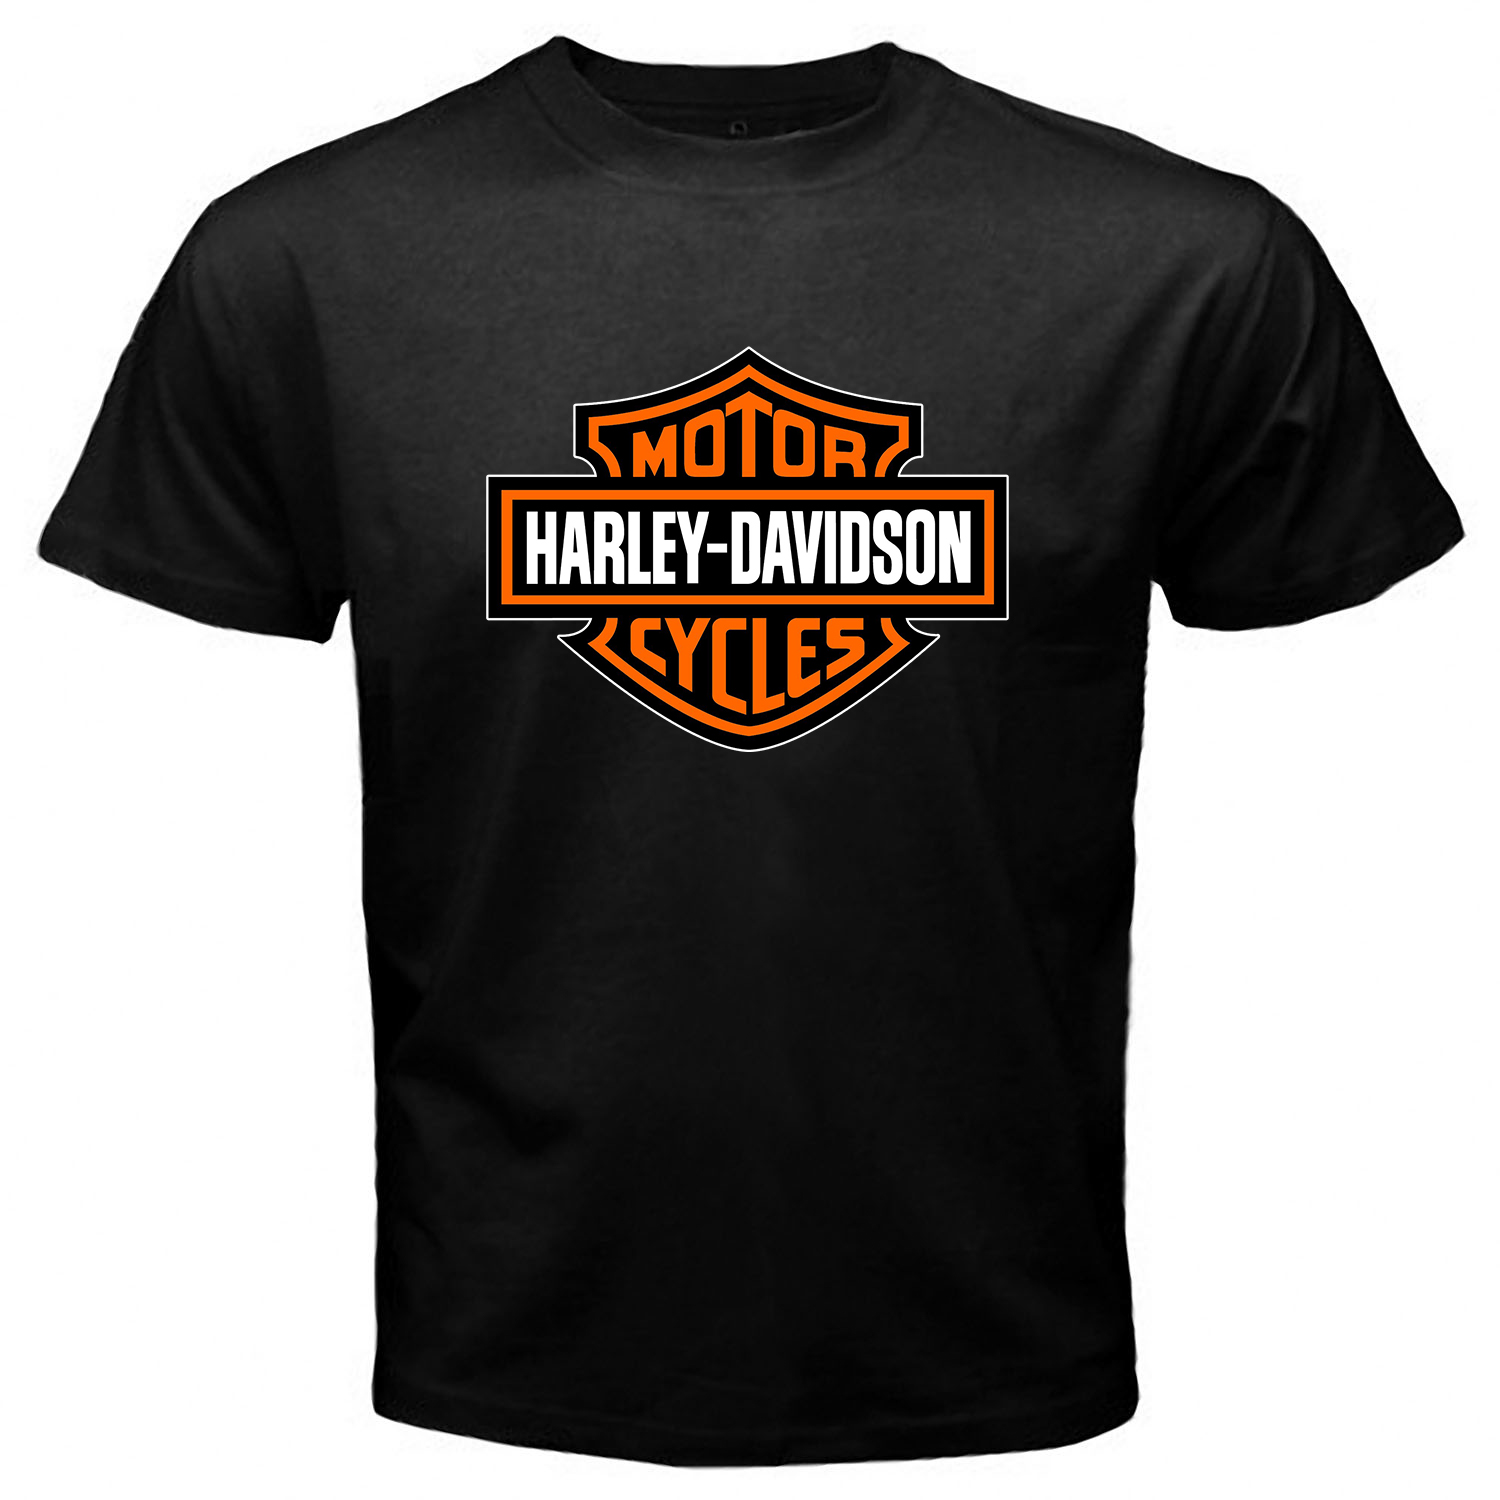 Harley Davidson Black T-shirt One Side